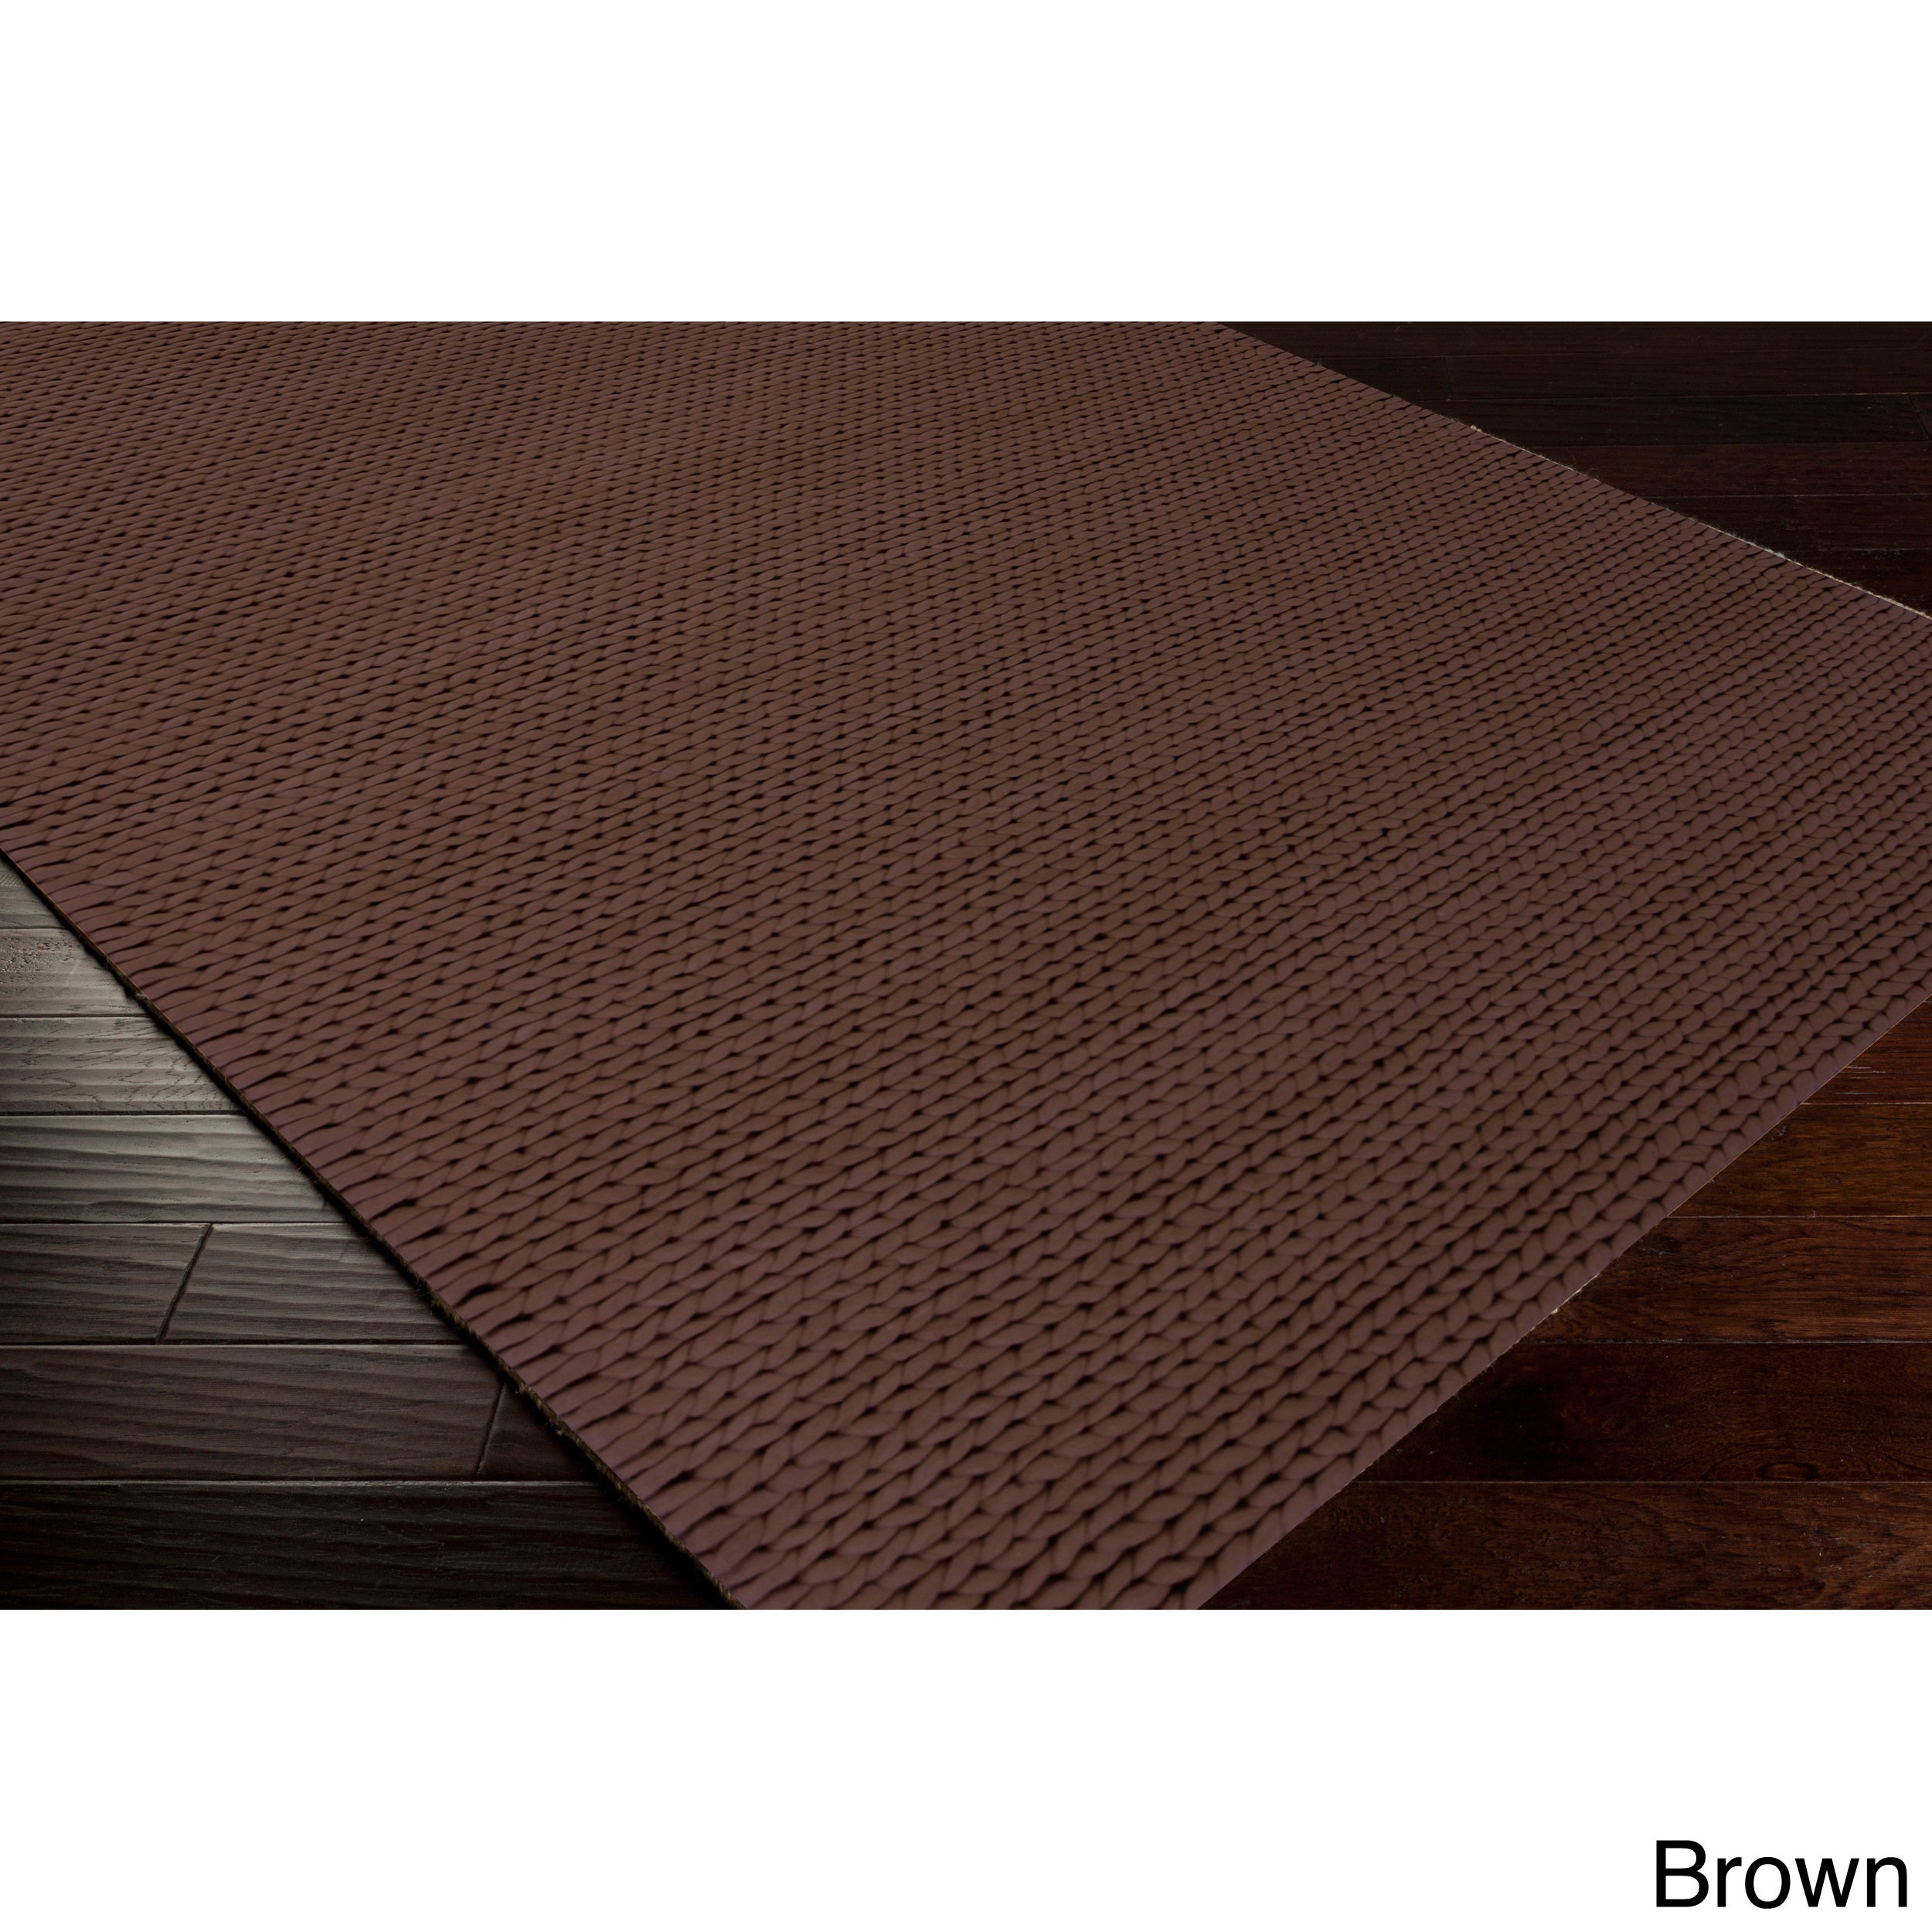 Hand Woven Yale Contemporary Solid Braided New Zealand